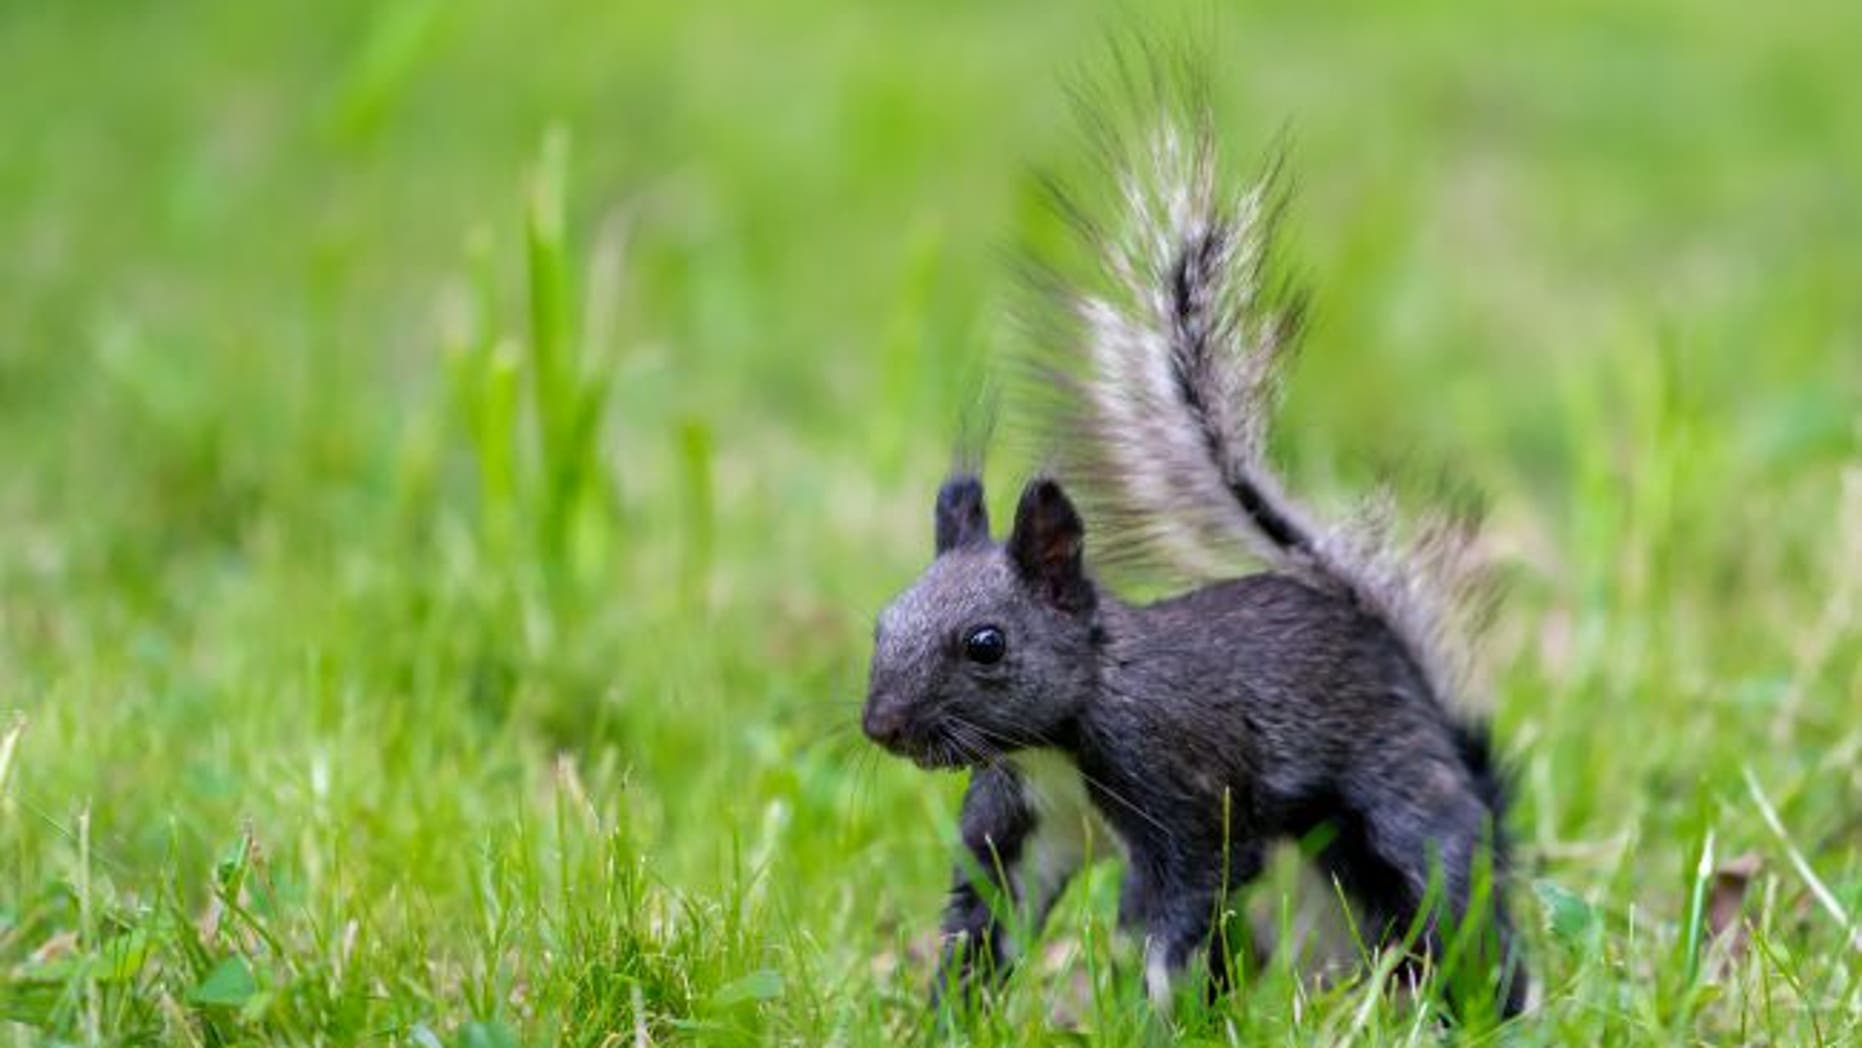 This member of the gray squirrel species has black fur. (Credit: Shutterstock)